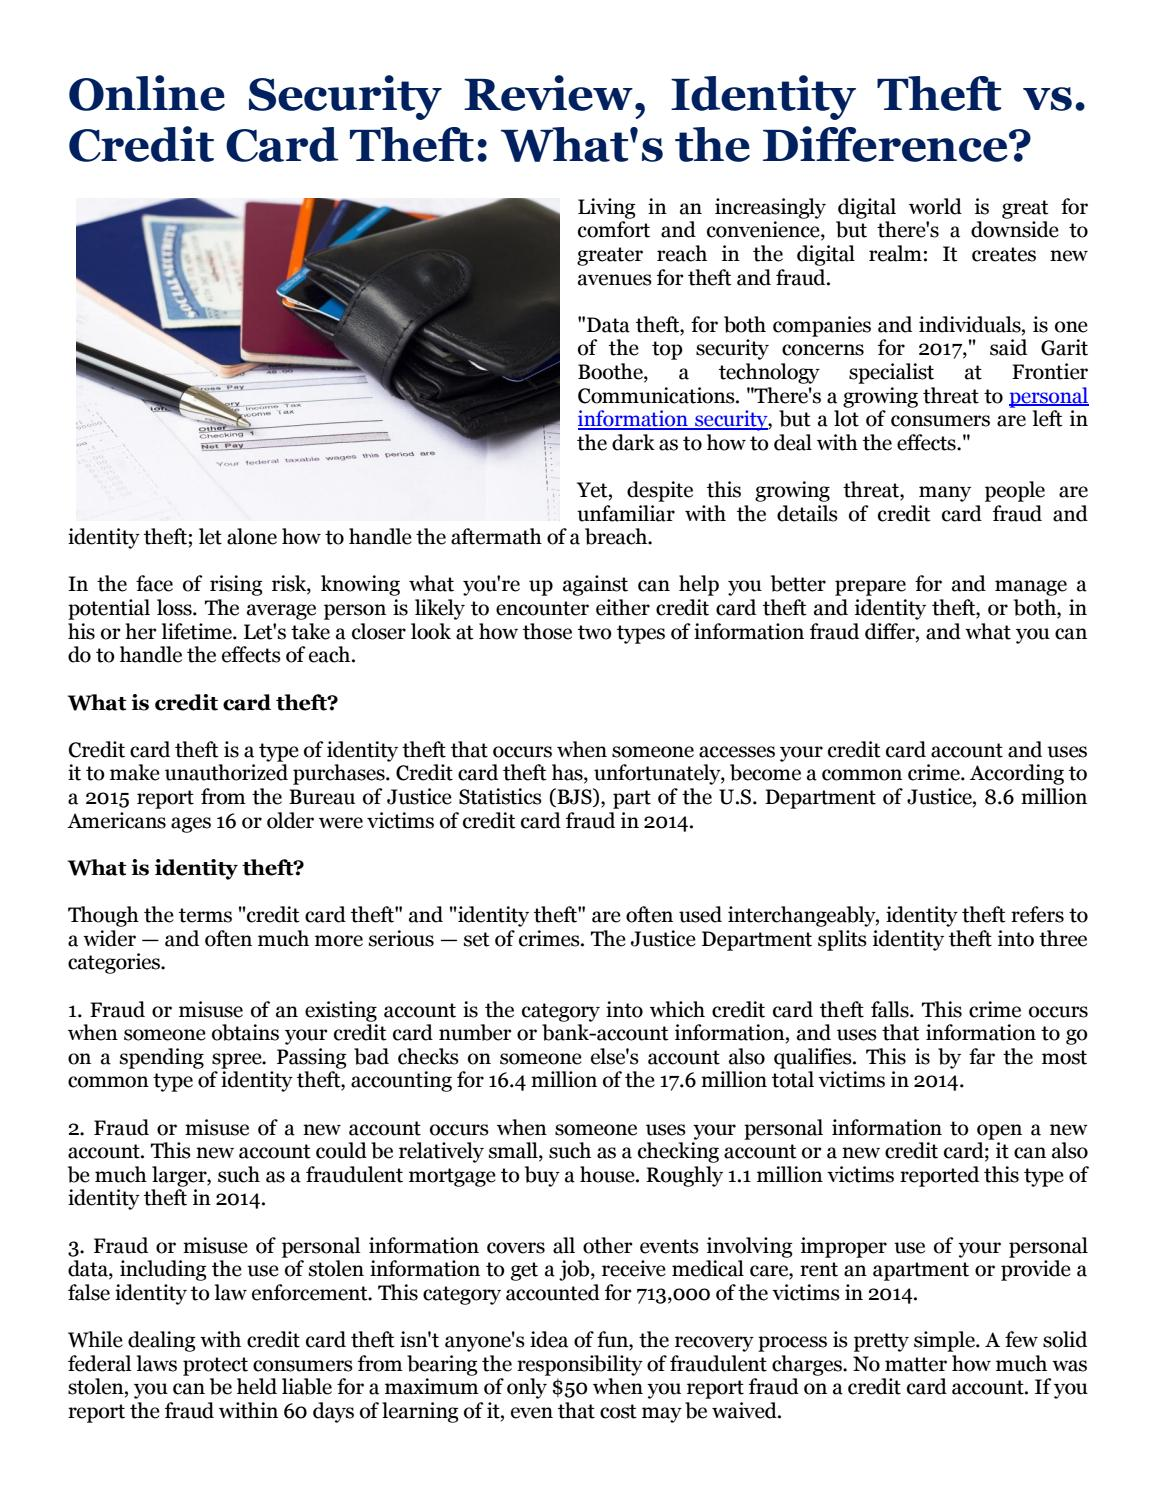 Online Security Review Identity Theft Vs Credit Card Theft What S The Difference By Mond Carlo Issuu